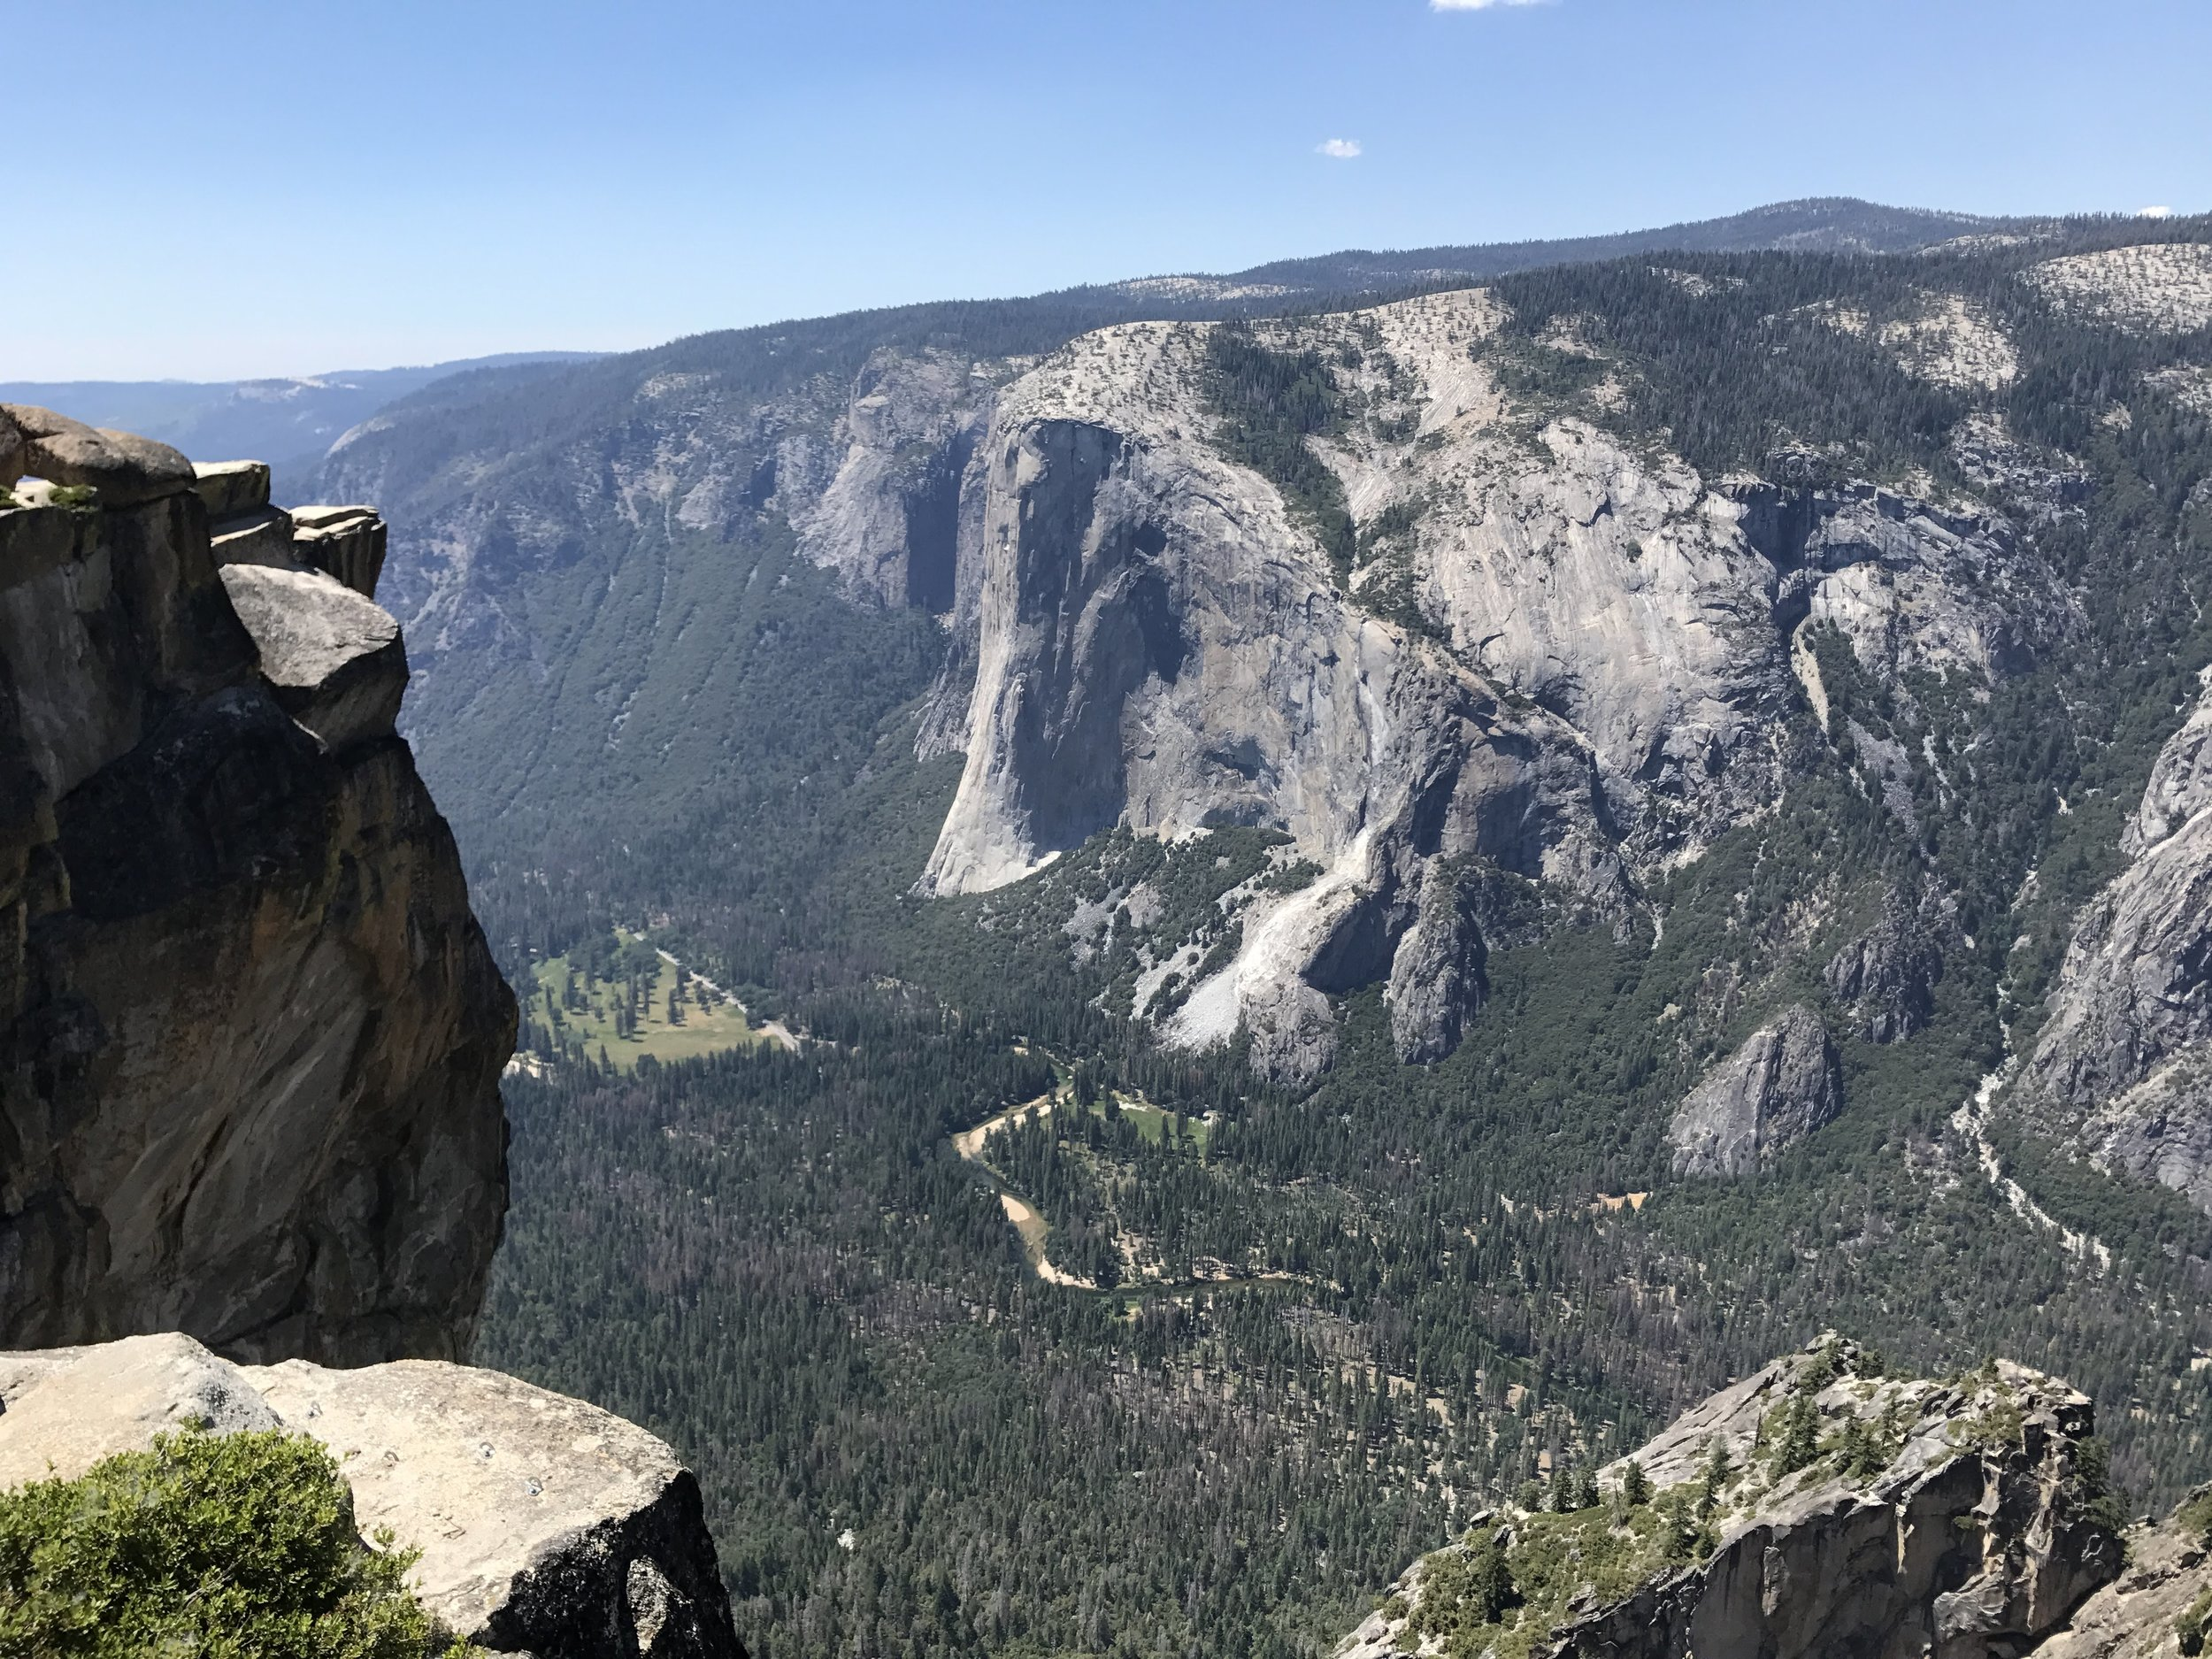 El Capitan from the South Rim